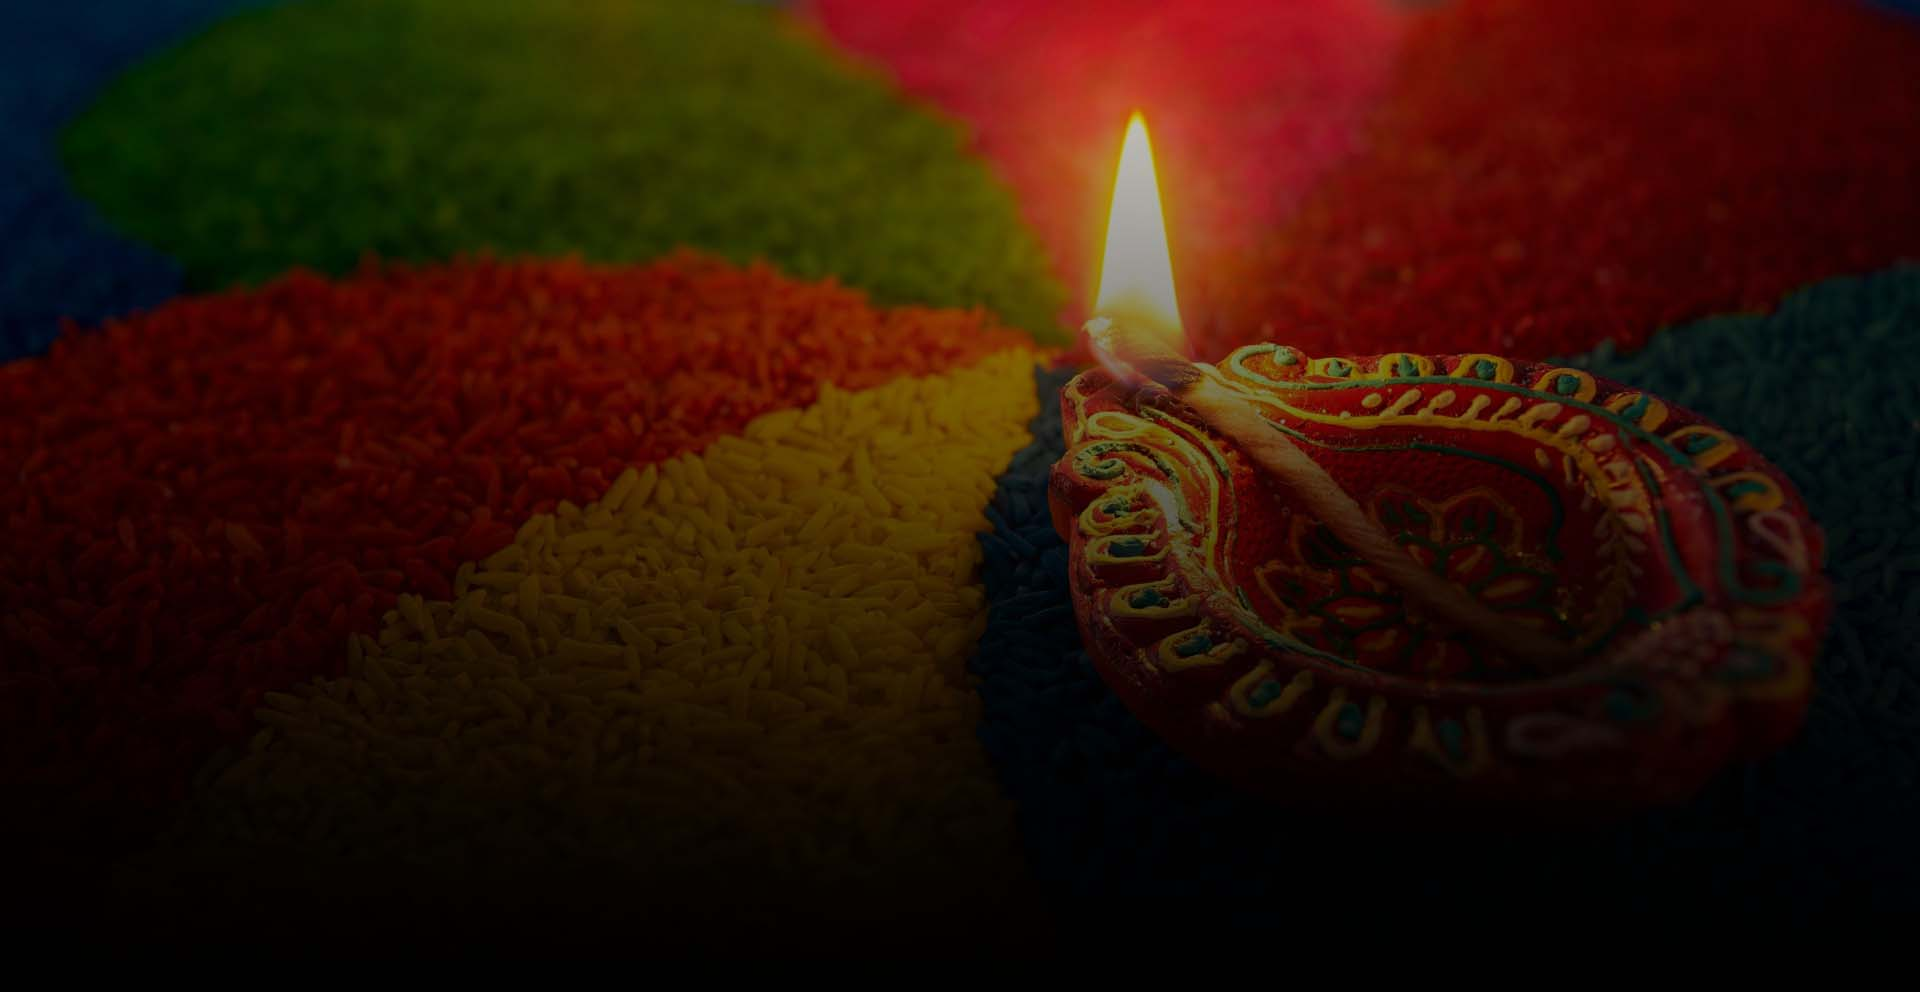 Diwali Celebration in India - History, Meaning and Significance